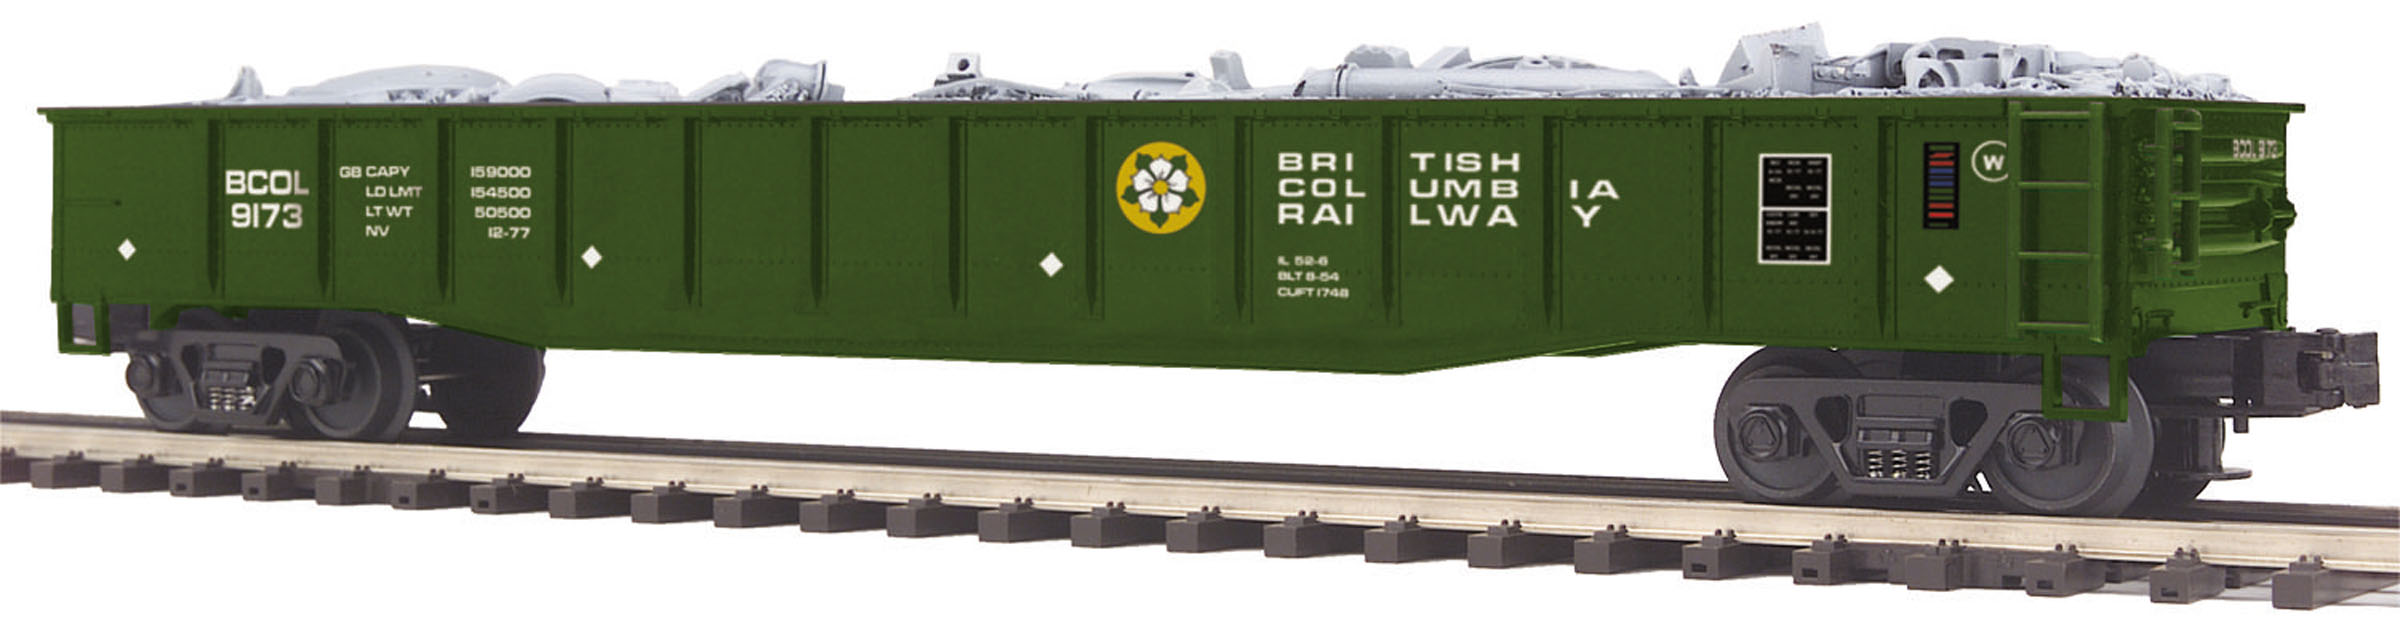 MTH 20-98981 O British Columbia Gondola w/Junk Load This is MTH 20-98981 O British Columbia Gondola w/Junk Load. Gondola car with junk load, British Columbia. Numbers: 9173, 9176. On its customer Web site, the Union Pacific Railroad characterizes a gondola as an extremely sturdy open design for carrying rugged unfinished commodities; its large flat interior design with side walls is described as more flexible than a flat car. These qualities make the modern gondola particularly popular with the steel industry, for transportation of loose materials like scrap metal, waste, coke, and slag as well as finished products like iron or steel plate, pipe, structural steel, and rails for railroad track. Our car replicates a 52' mill gondola, so-called for its popularity with steel mills, and carries a removable load of scrap metal that might be recycled and used to stamp parts for autos, appliances, and a variety of other products.Other commodities commonly shipped in gondolas include mineral ores, granite slabs, gravel, logs, lumber, railroad ties, and even prefabricated railroad track, also known as panel track.The name for these cars actually predates railroads. In the early 1800s, utilitarian flat-bottomed boats with low sides, used to transport coal down the Potomac River to the Washington D.C. area, were called gondolas as a spoof on the much fancier Venetian gondolas. Similarly shaped coal-carrying cars on early railroads earned the same moniker. As more specialized cars were invented for coal service, the gondola evolved into the general-purpose car it is today.MTH Premier O Scale freight cars are the perfect complement to any manufacturer's scale proportioned O Gauge locomotives. Whether you prefer to purchase cars separately or assemble a unit train, MTH Premier Rolling Stock has the cars for you in a variety of car types and paint schemes.Virtually every sturdy car is offered in two car numbers which makes it even